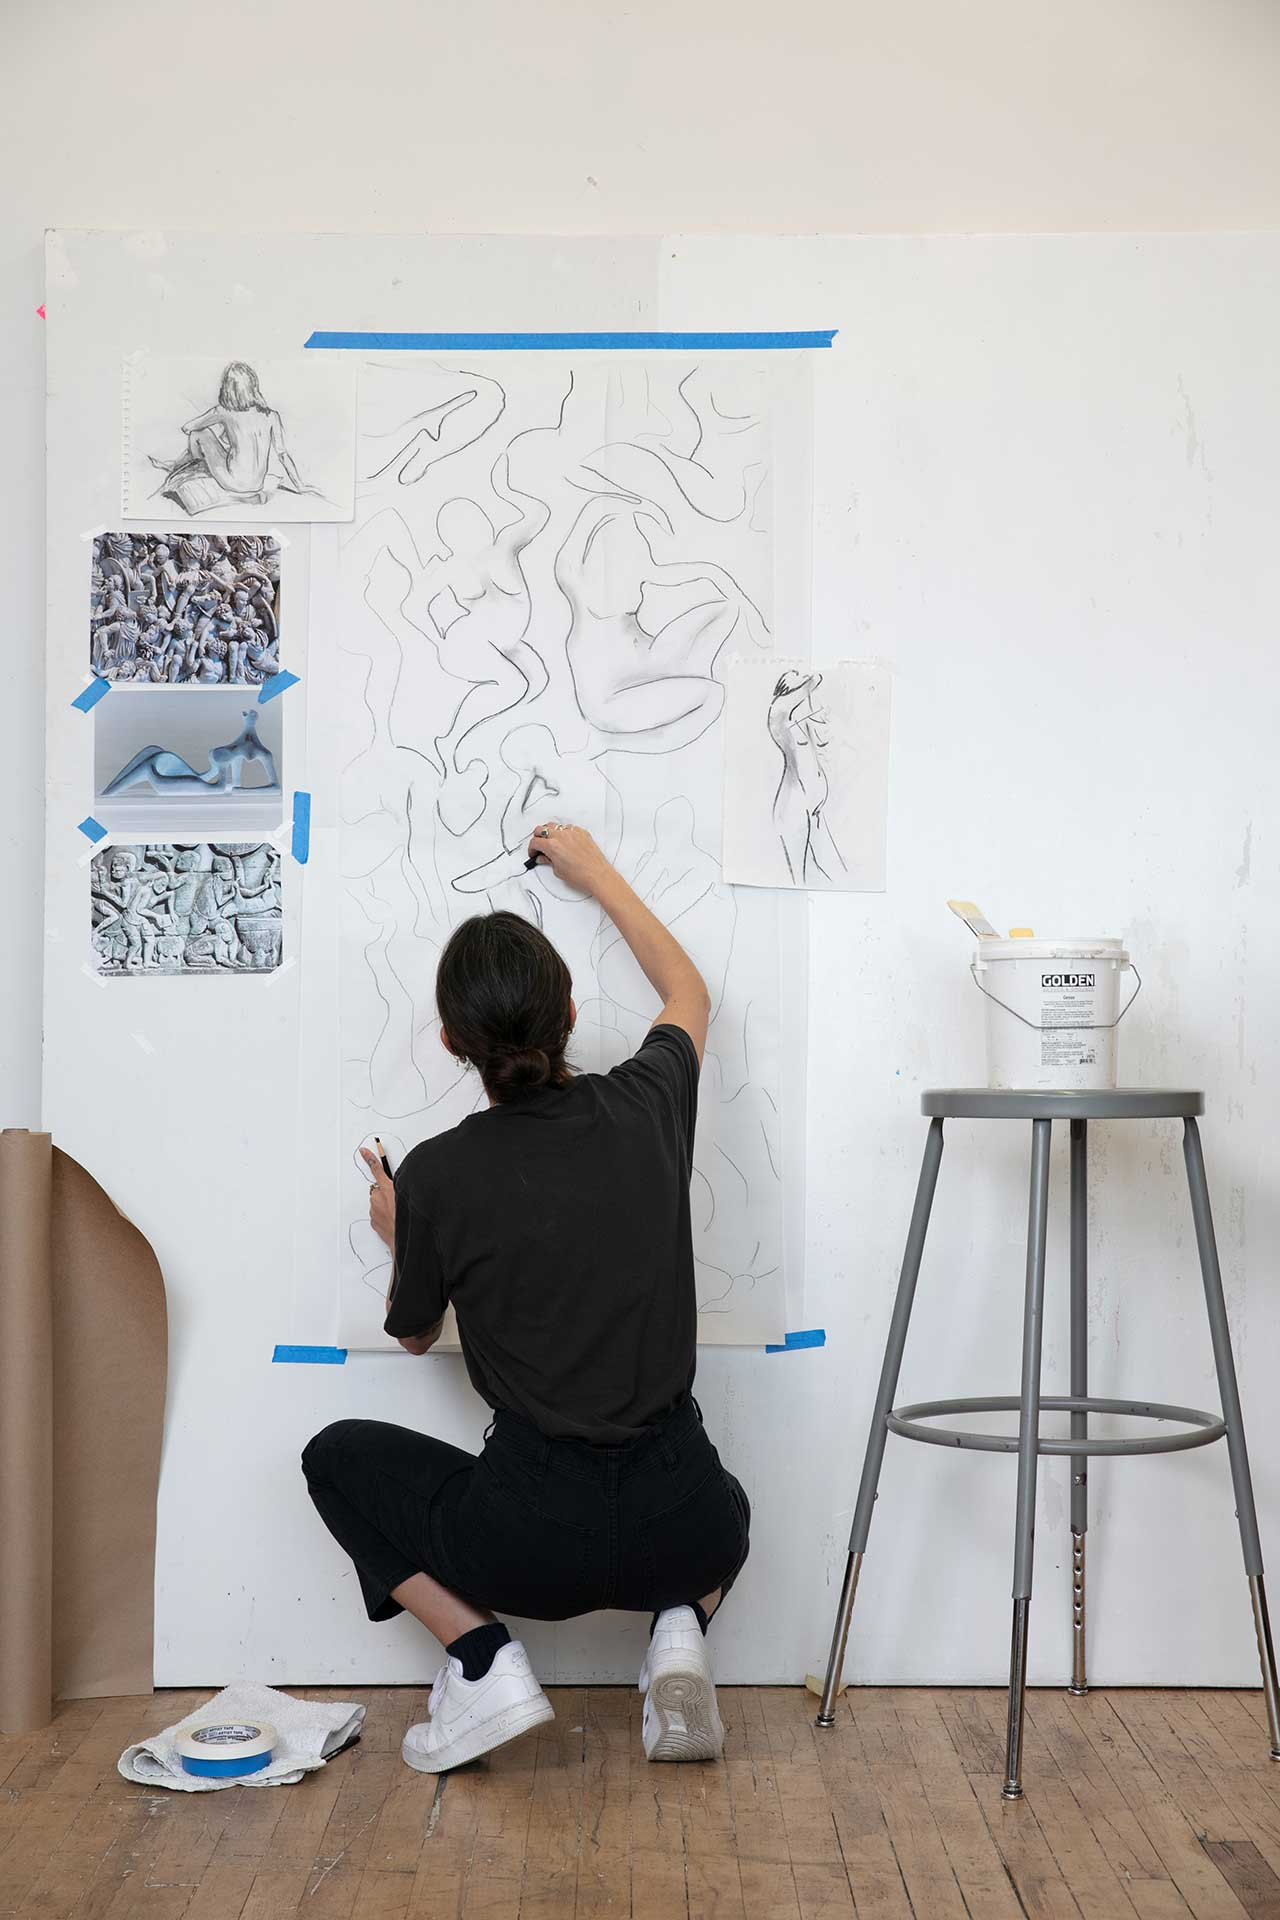 artist squatting down and sketching abstract pattern on wall